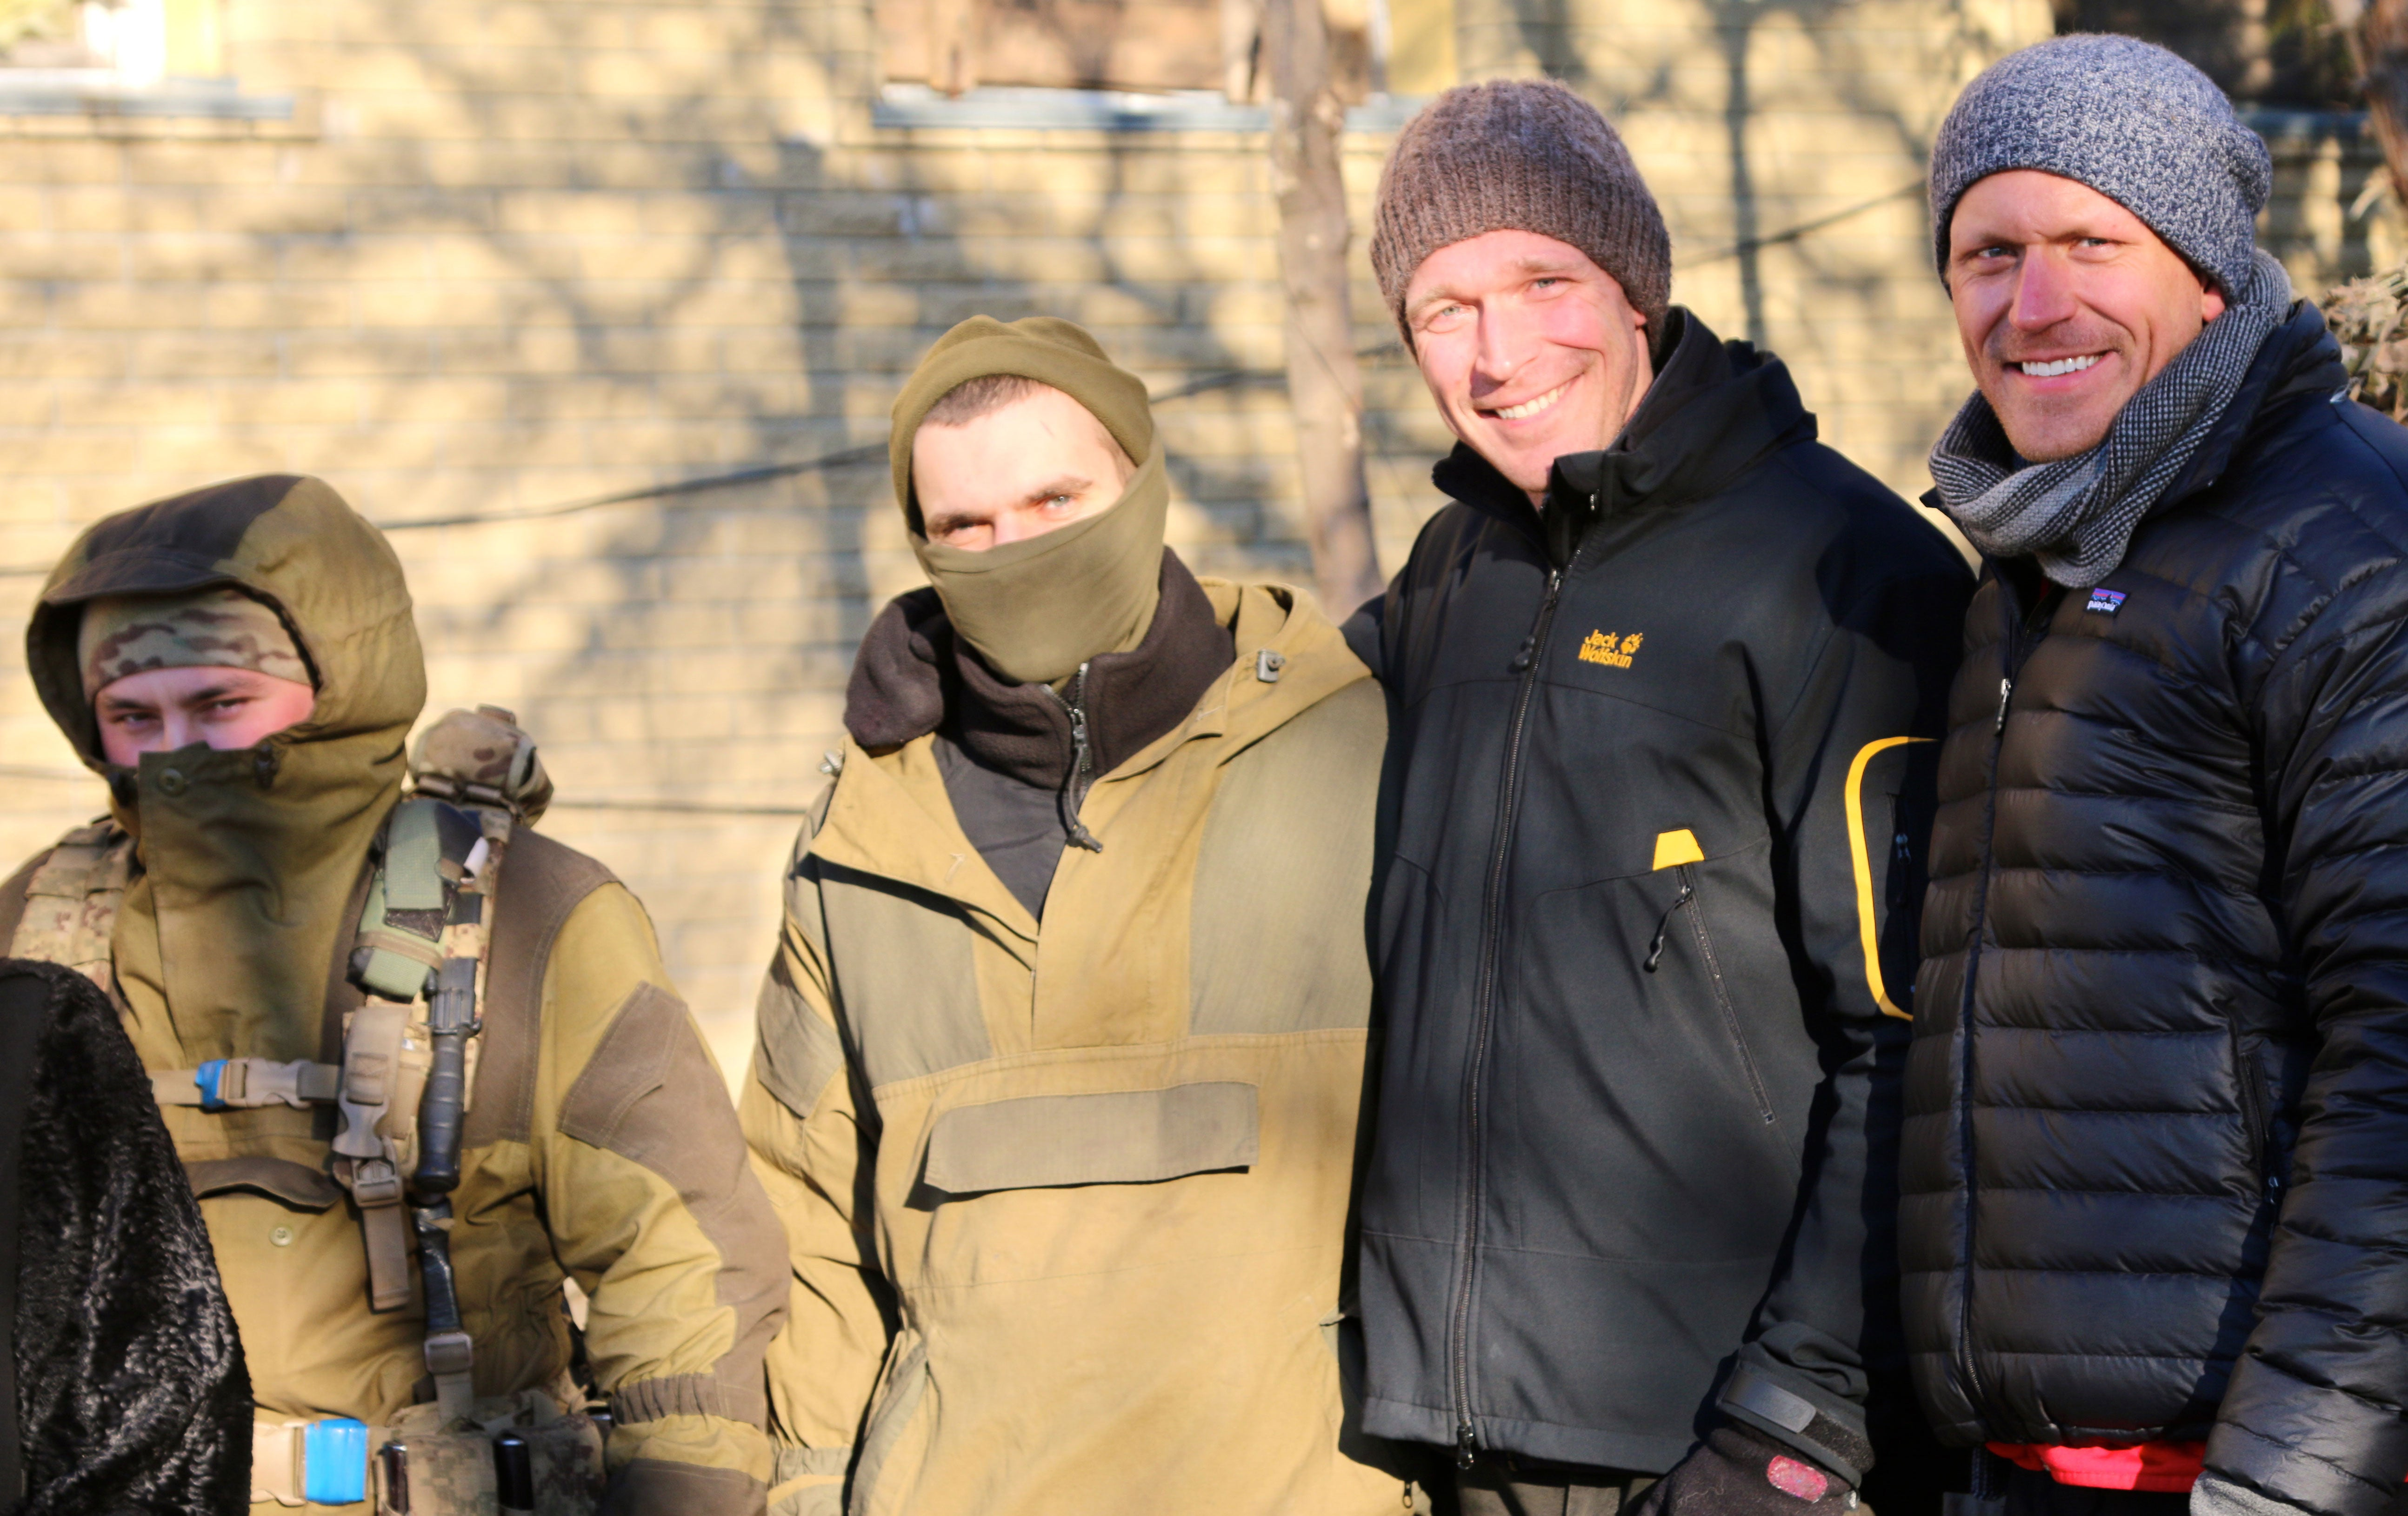 The author, second from right, and his brother, right, with Ukrainian soldiers in Marinka. (Photos: Nolan Peterson/The Daily Signal)